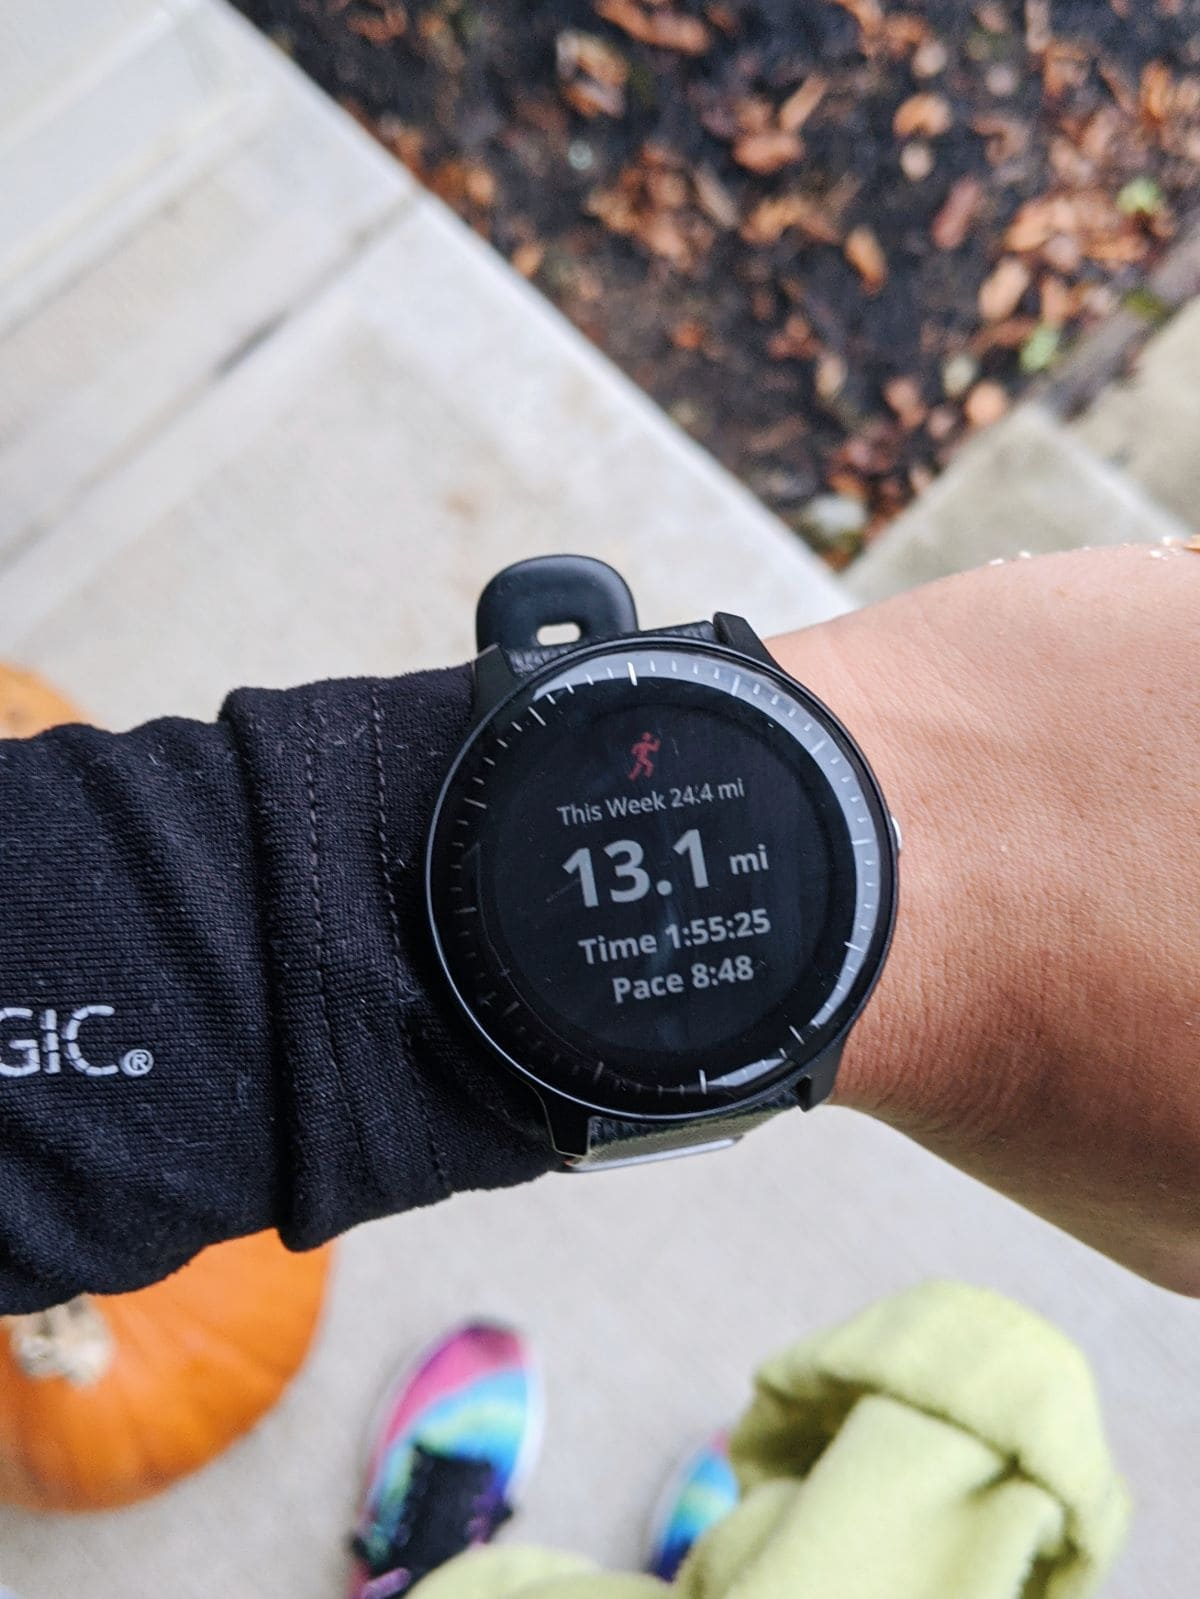 Vivoactive 3 Music watch face with half marathon stats